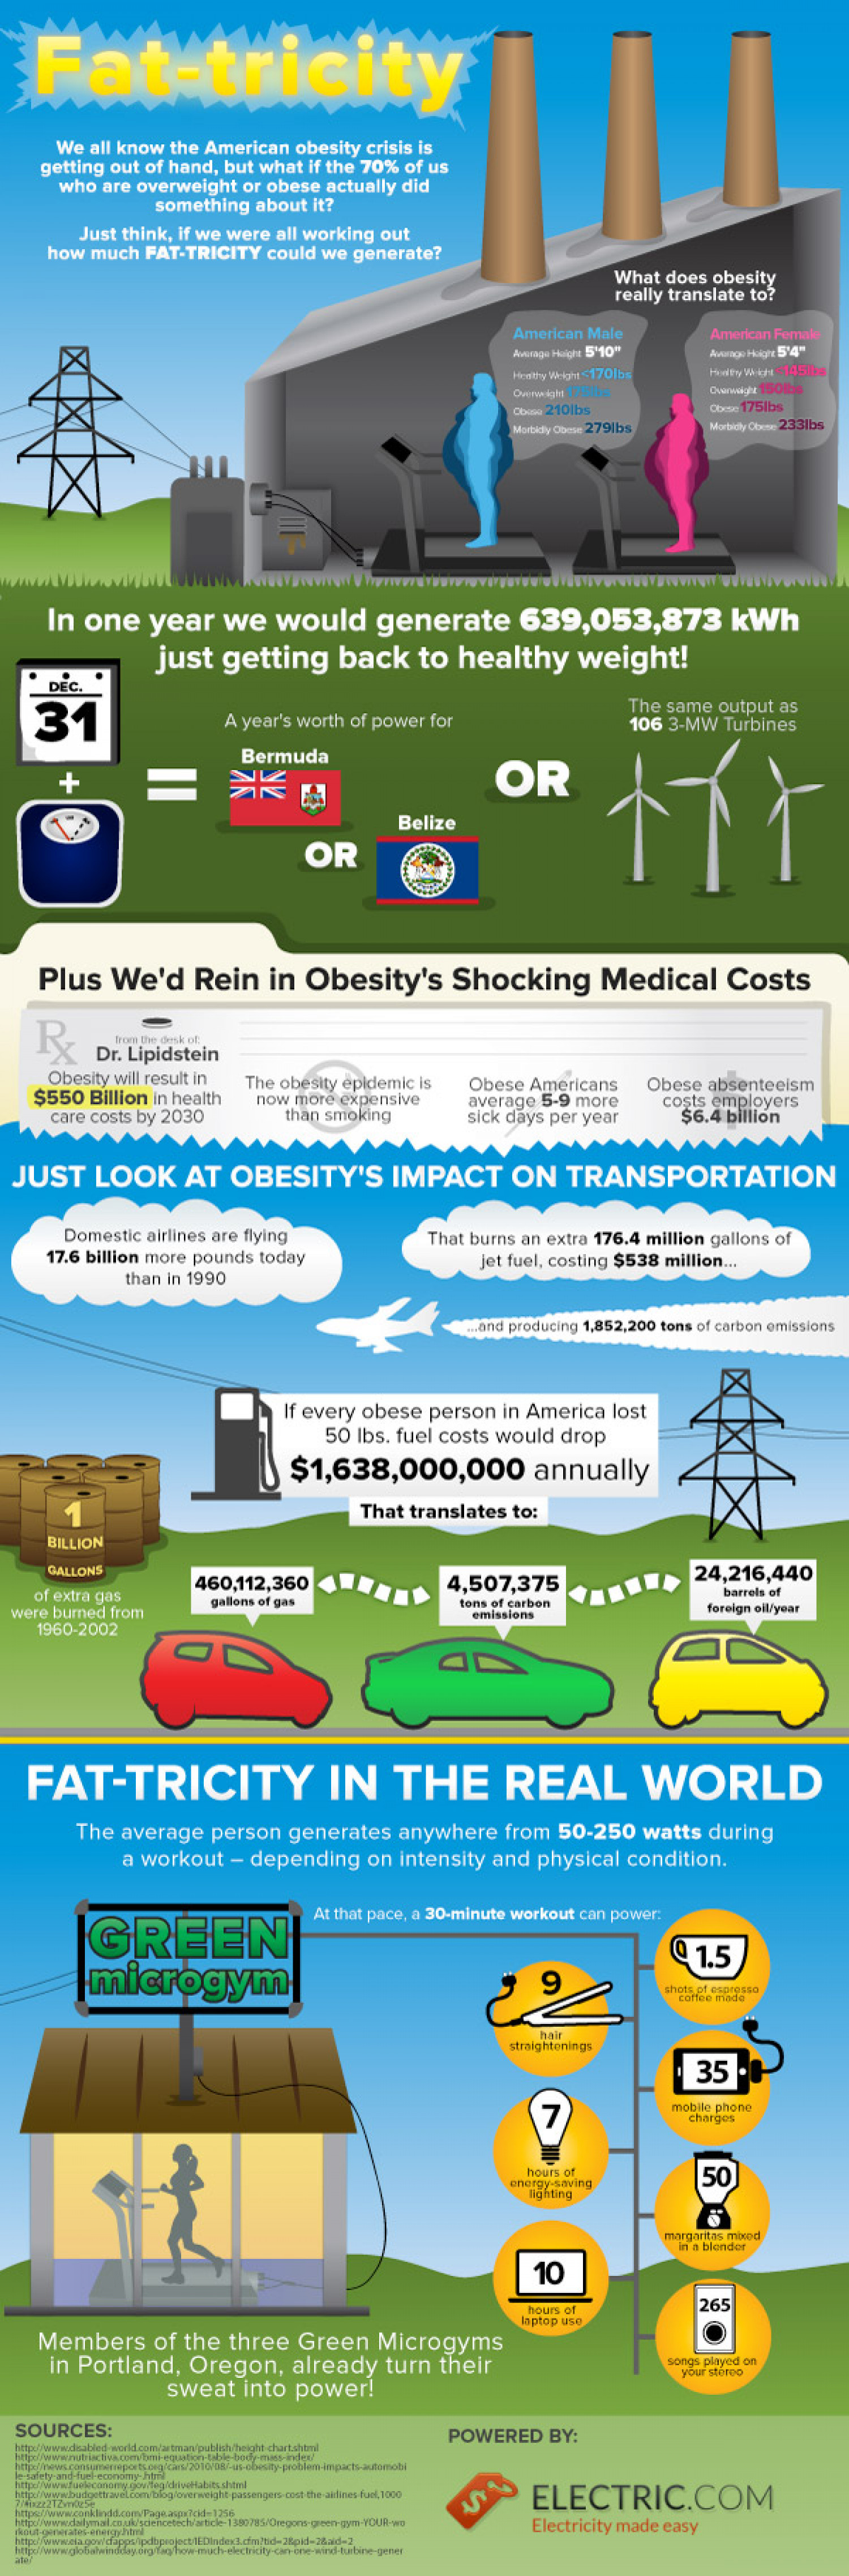 Fat-tricity Infographic